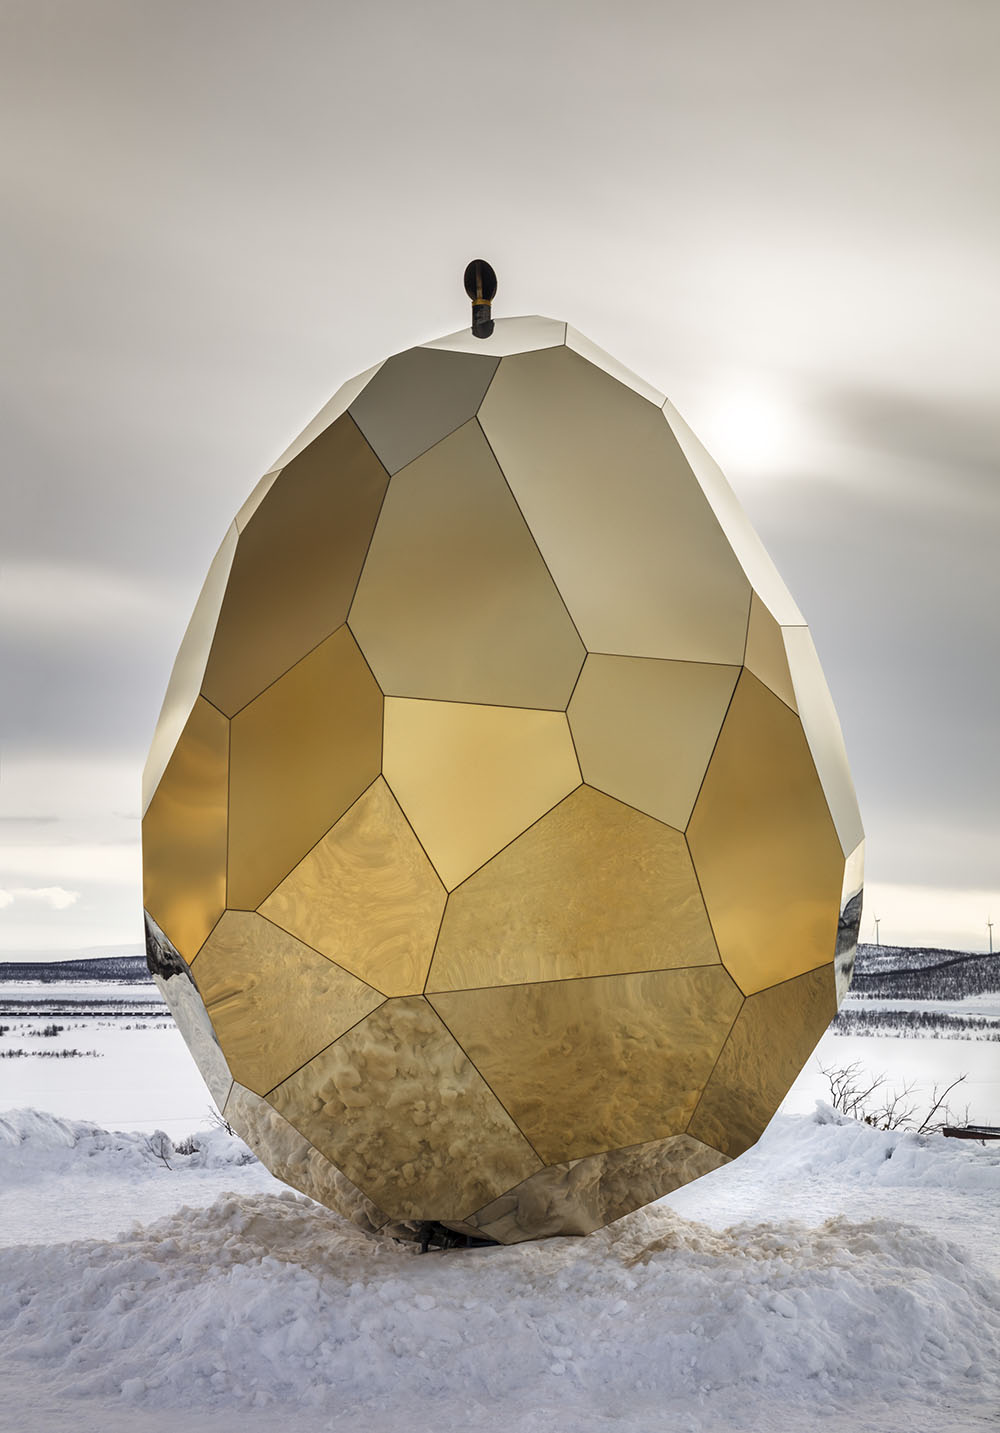 A Mirrored Golden Egg Sauna is Hatched in Sweden